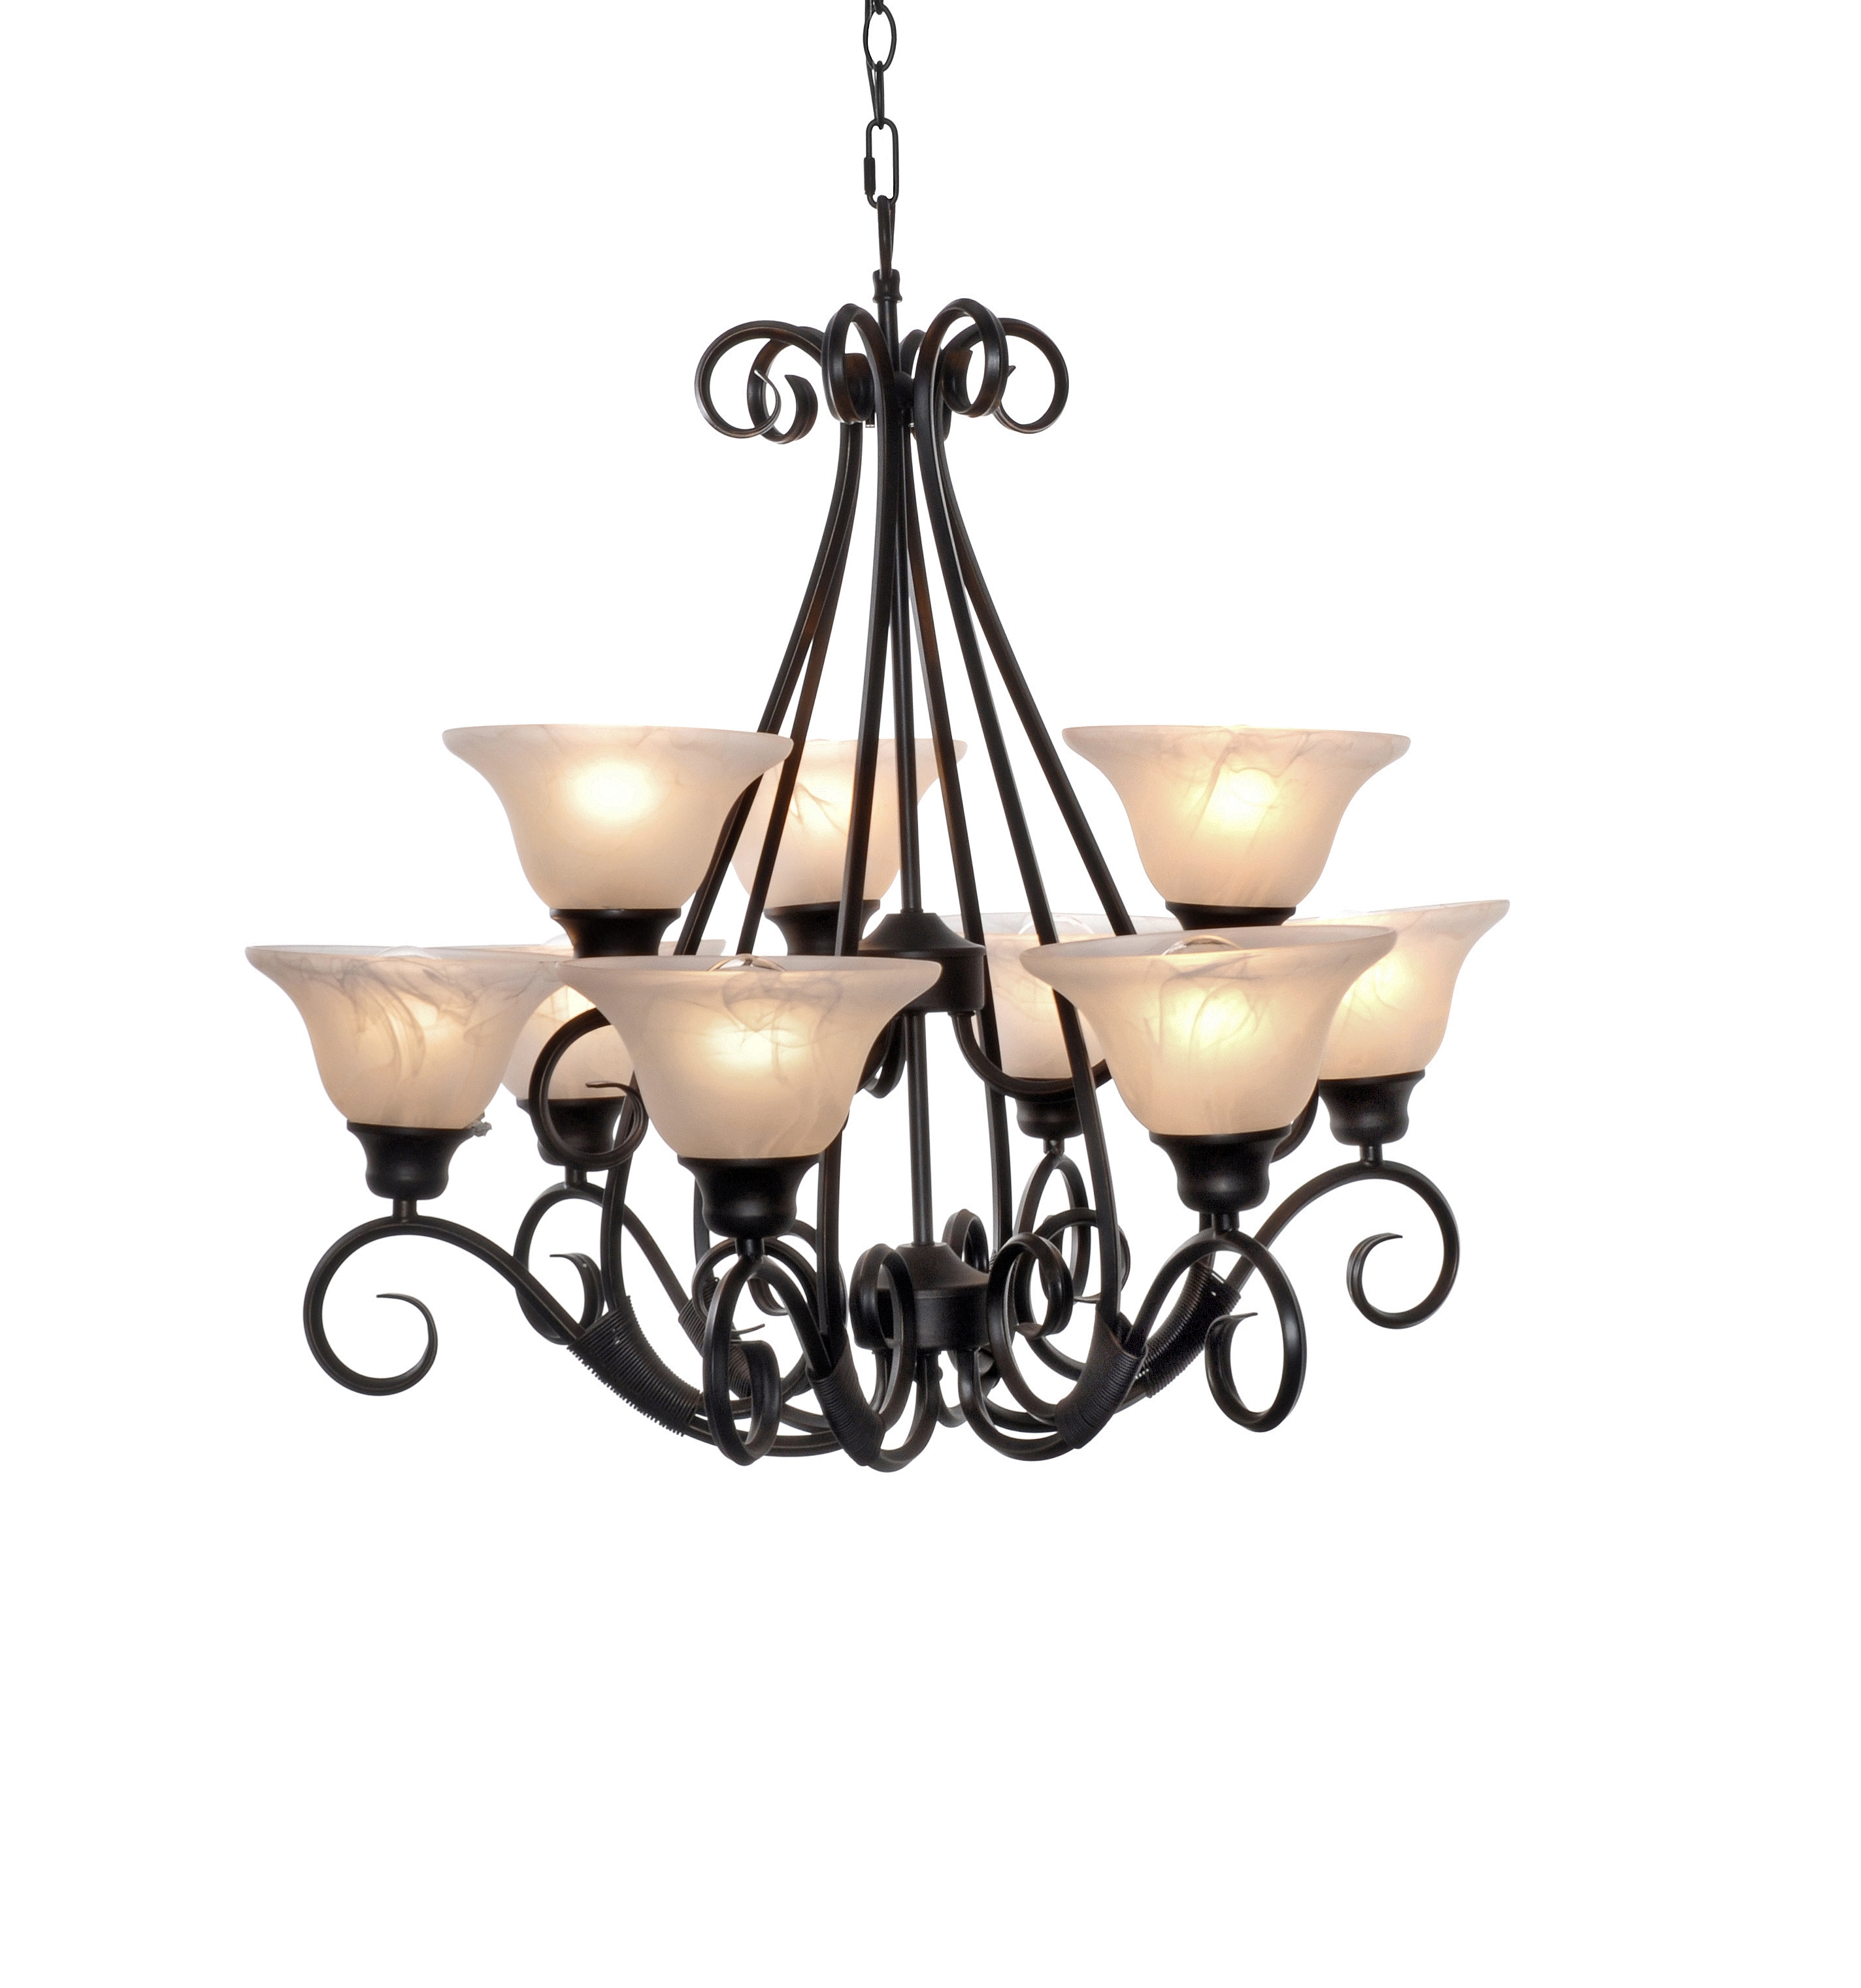 pacific 9 light chandelier multi tier chandelier maxim. Black Bedroom Furniture Sets. Home Design Ideas